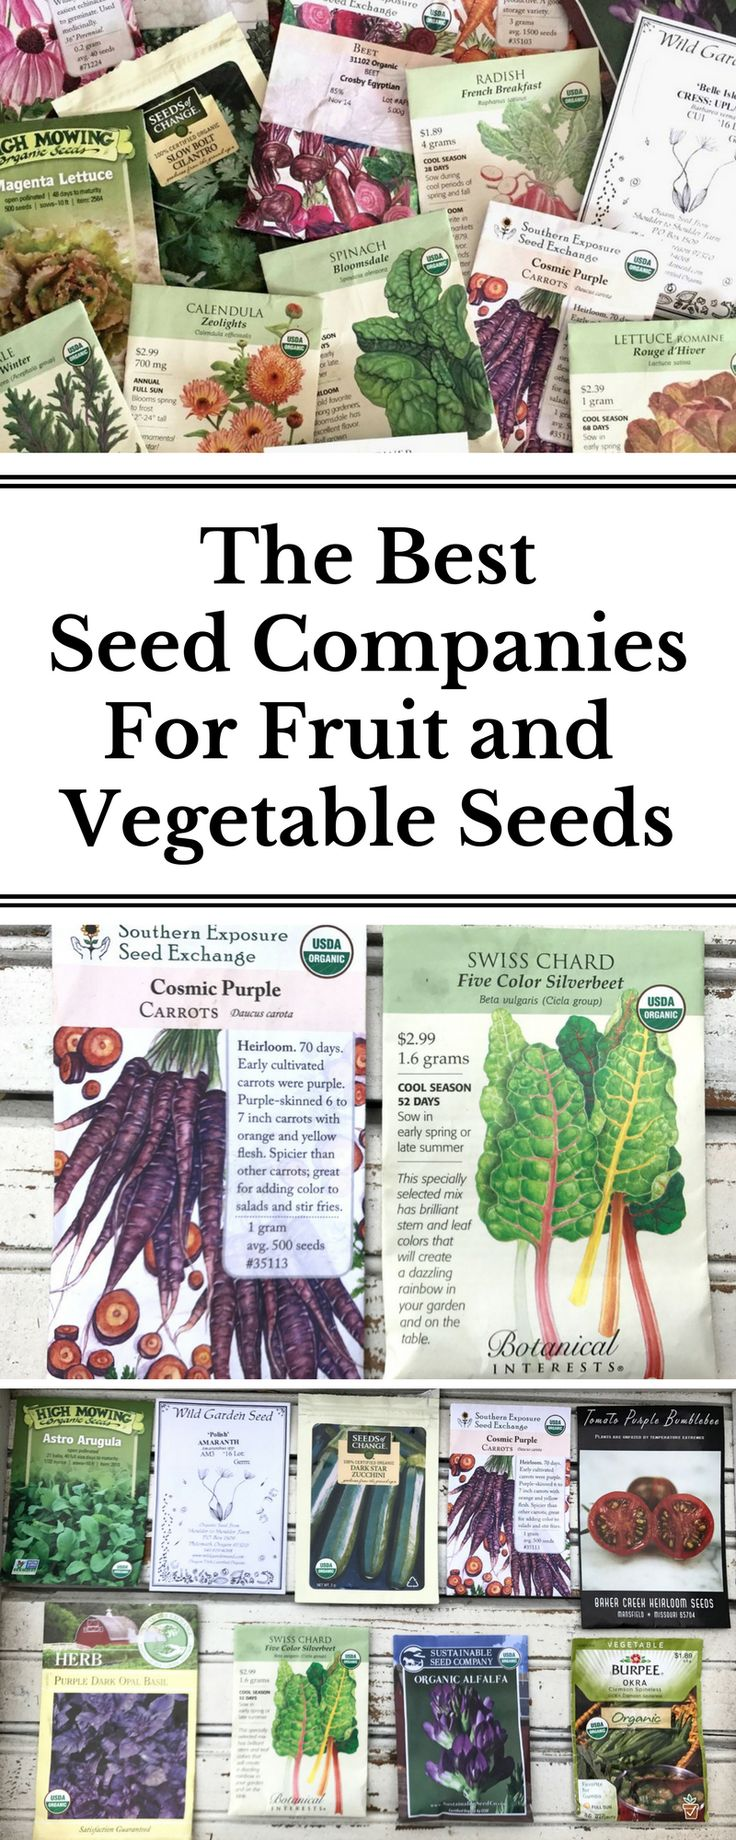 The best seed companies for organic and rare seeds!